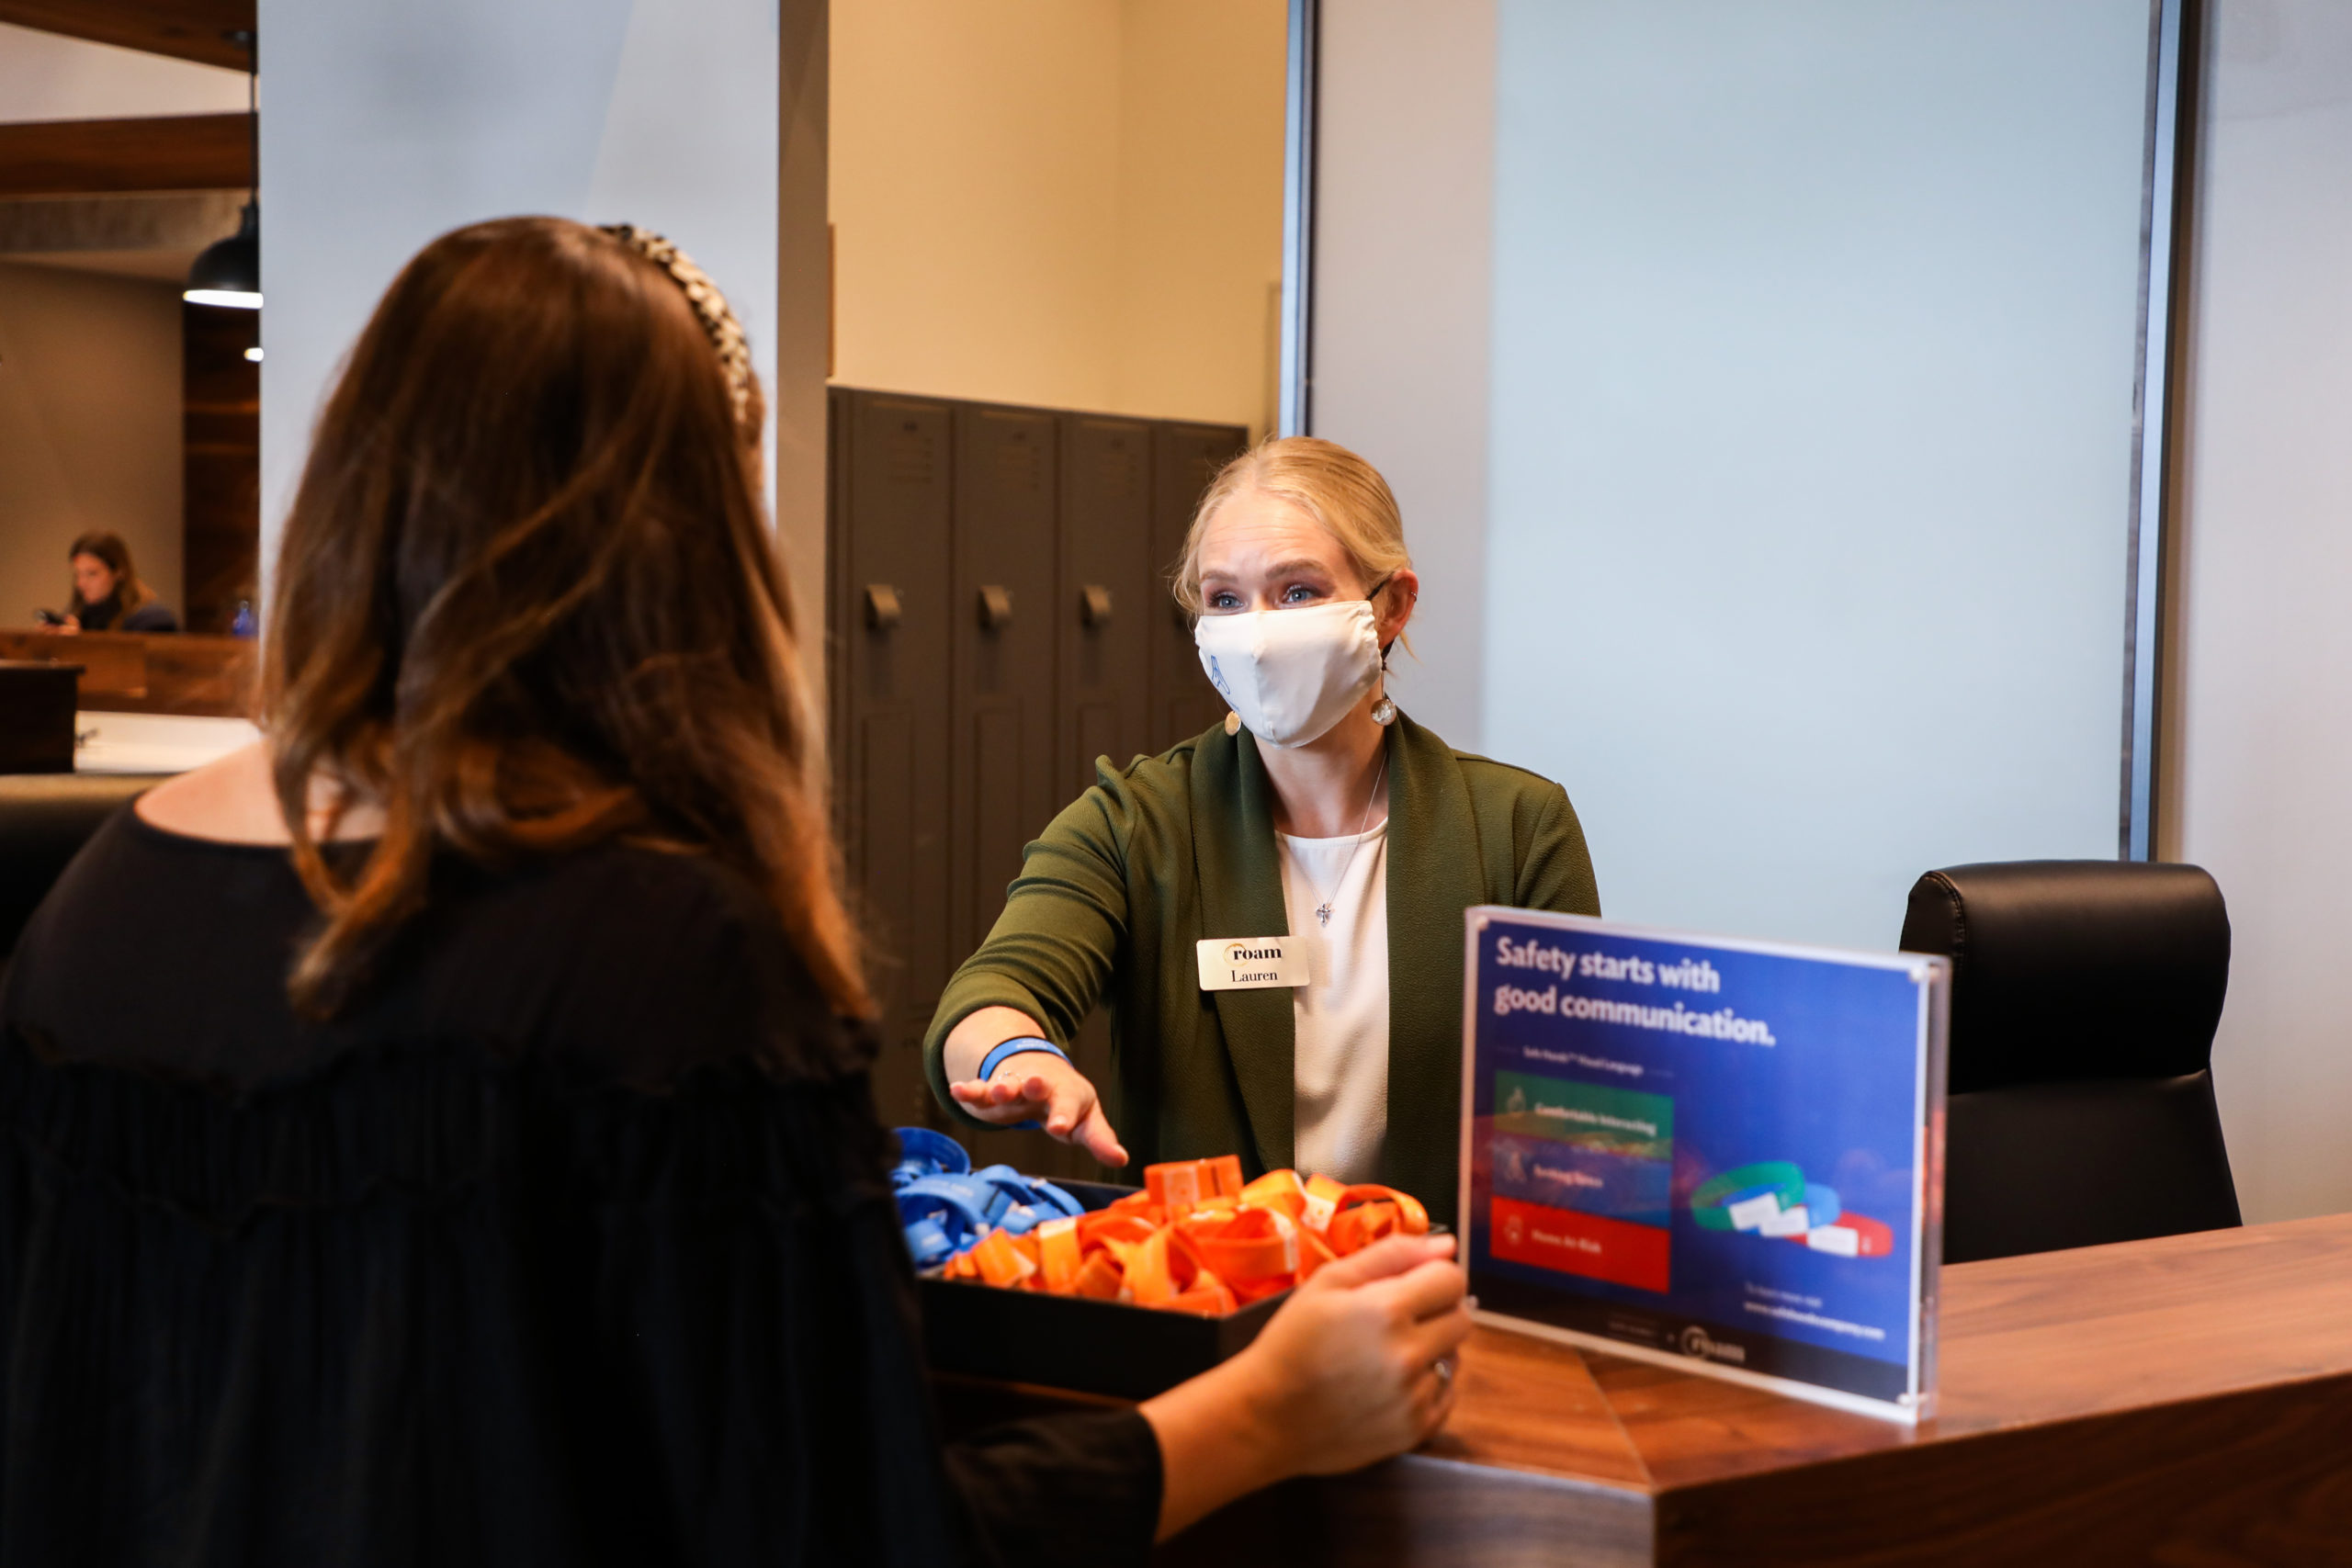 Employee with masking helping guest